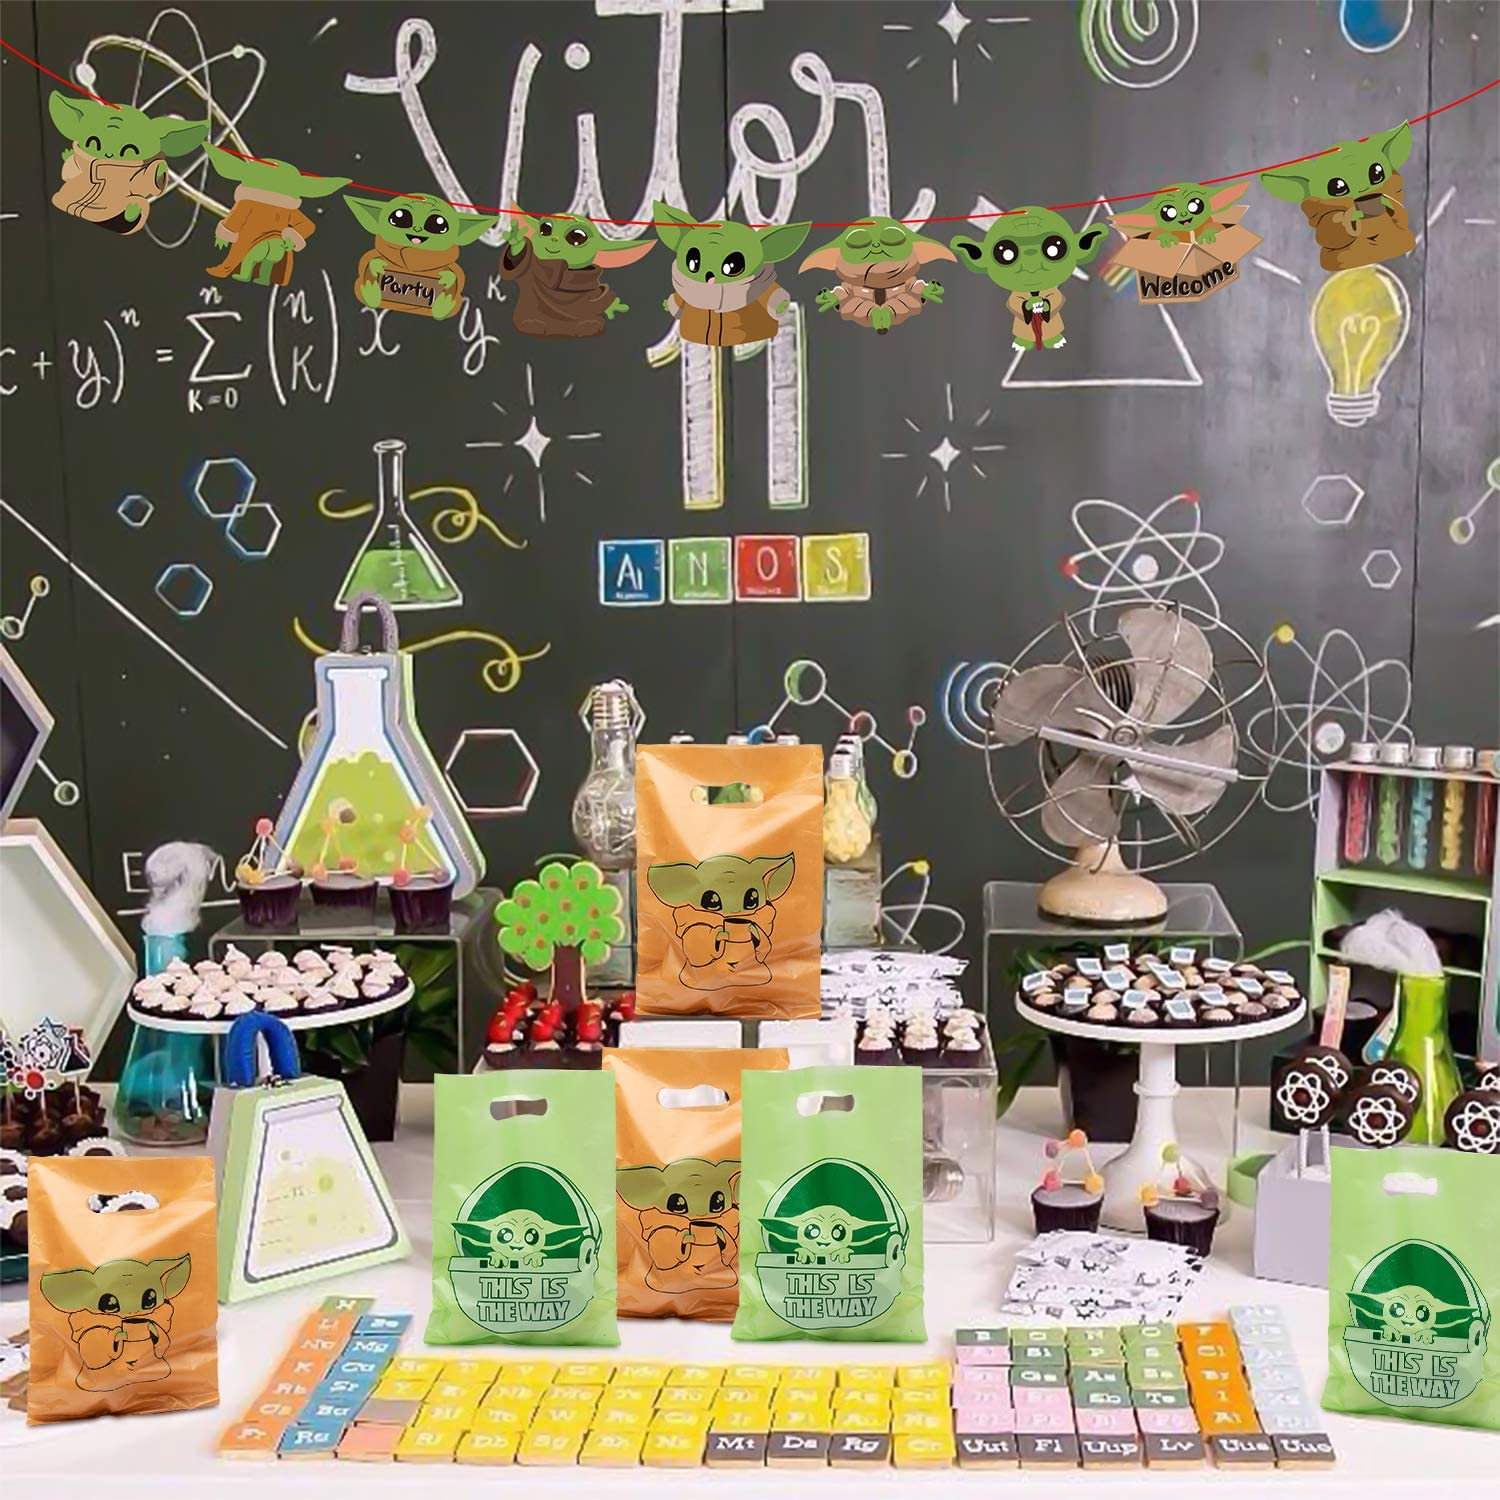 60Pcs Baby Yoda Party Favor Bag with Handles Space War Theme Plastic Bags This Is The Way Green Orange Candy Treat Goodie Sack Galaxy Wars Birthday Supplies Decorations Pack Loot Gift for Kid Boy Girl